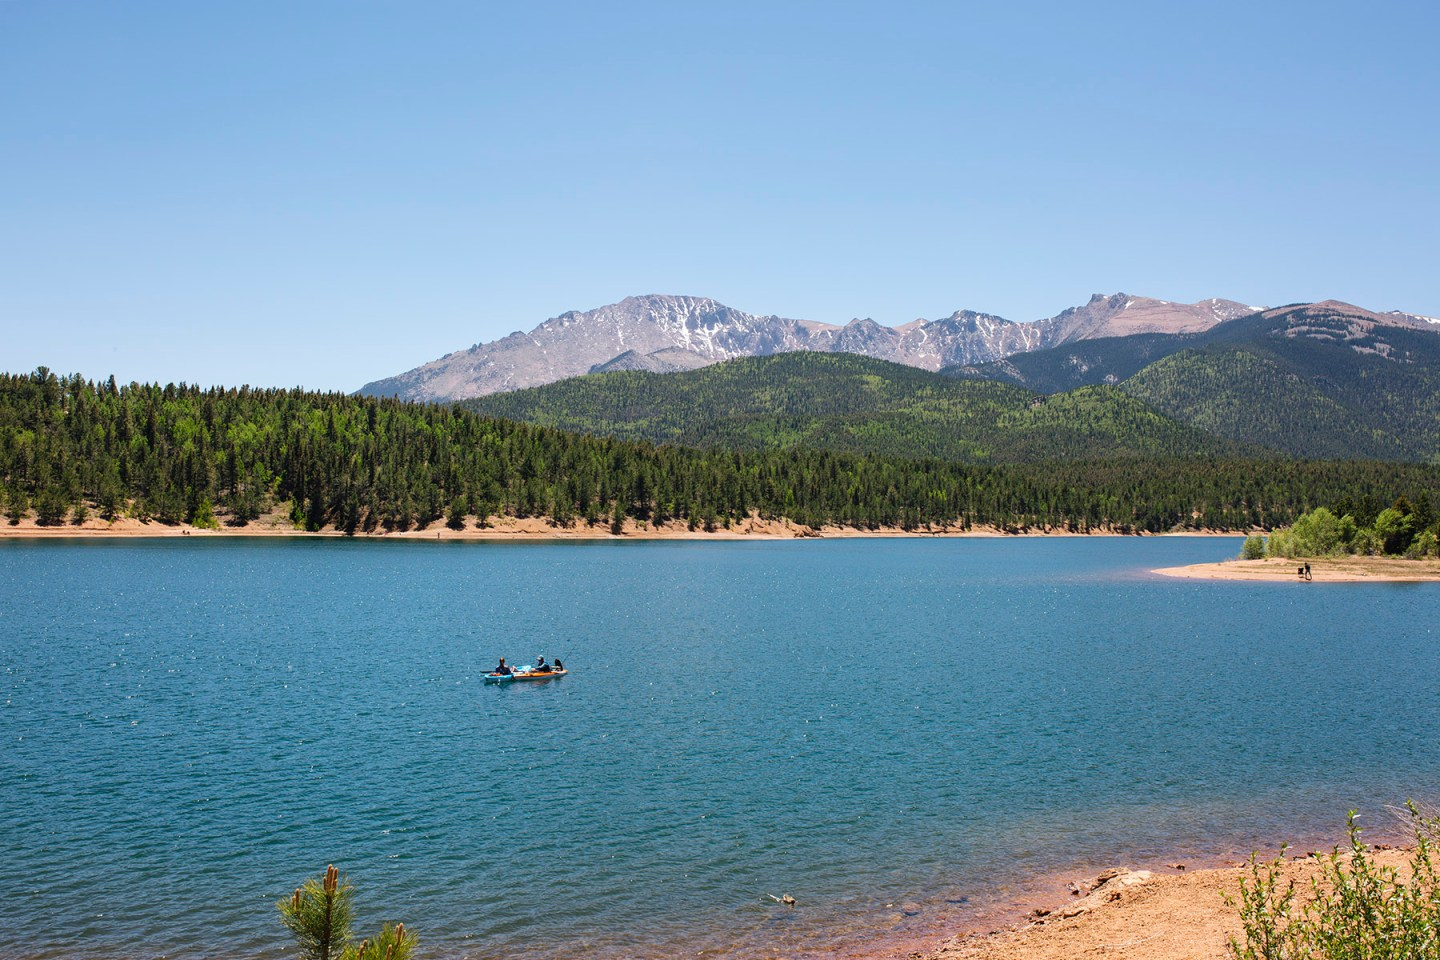 Tips for Visiting Pikes Peak